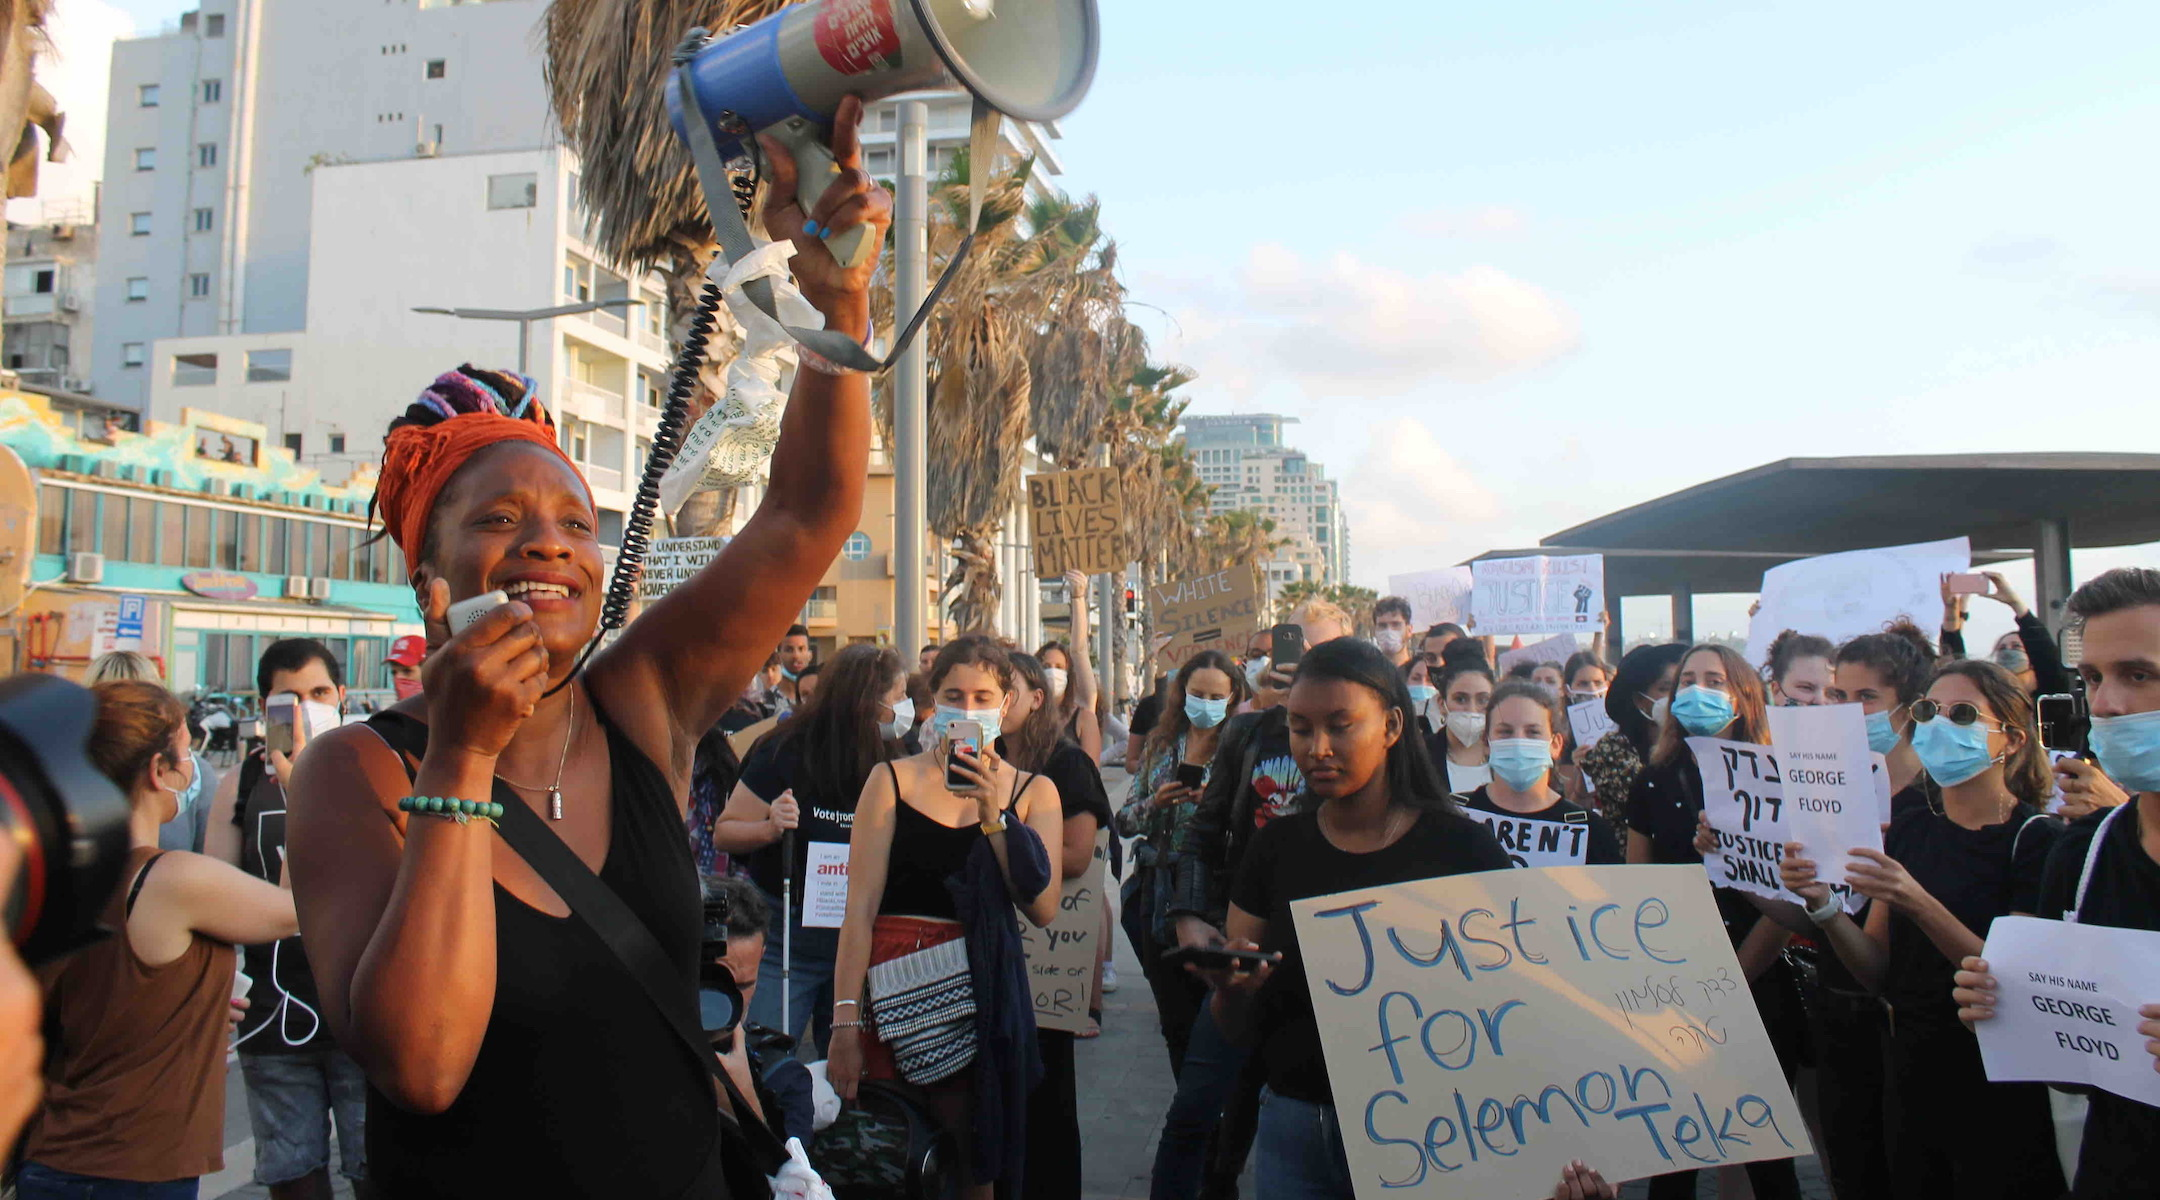 Hundreds of Israelis, angry with police violence at home, protest the George Floyd killing in...